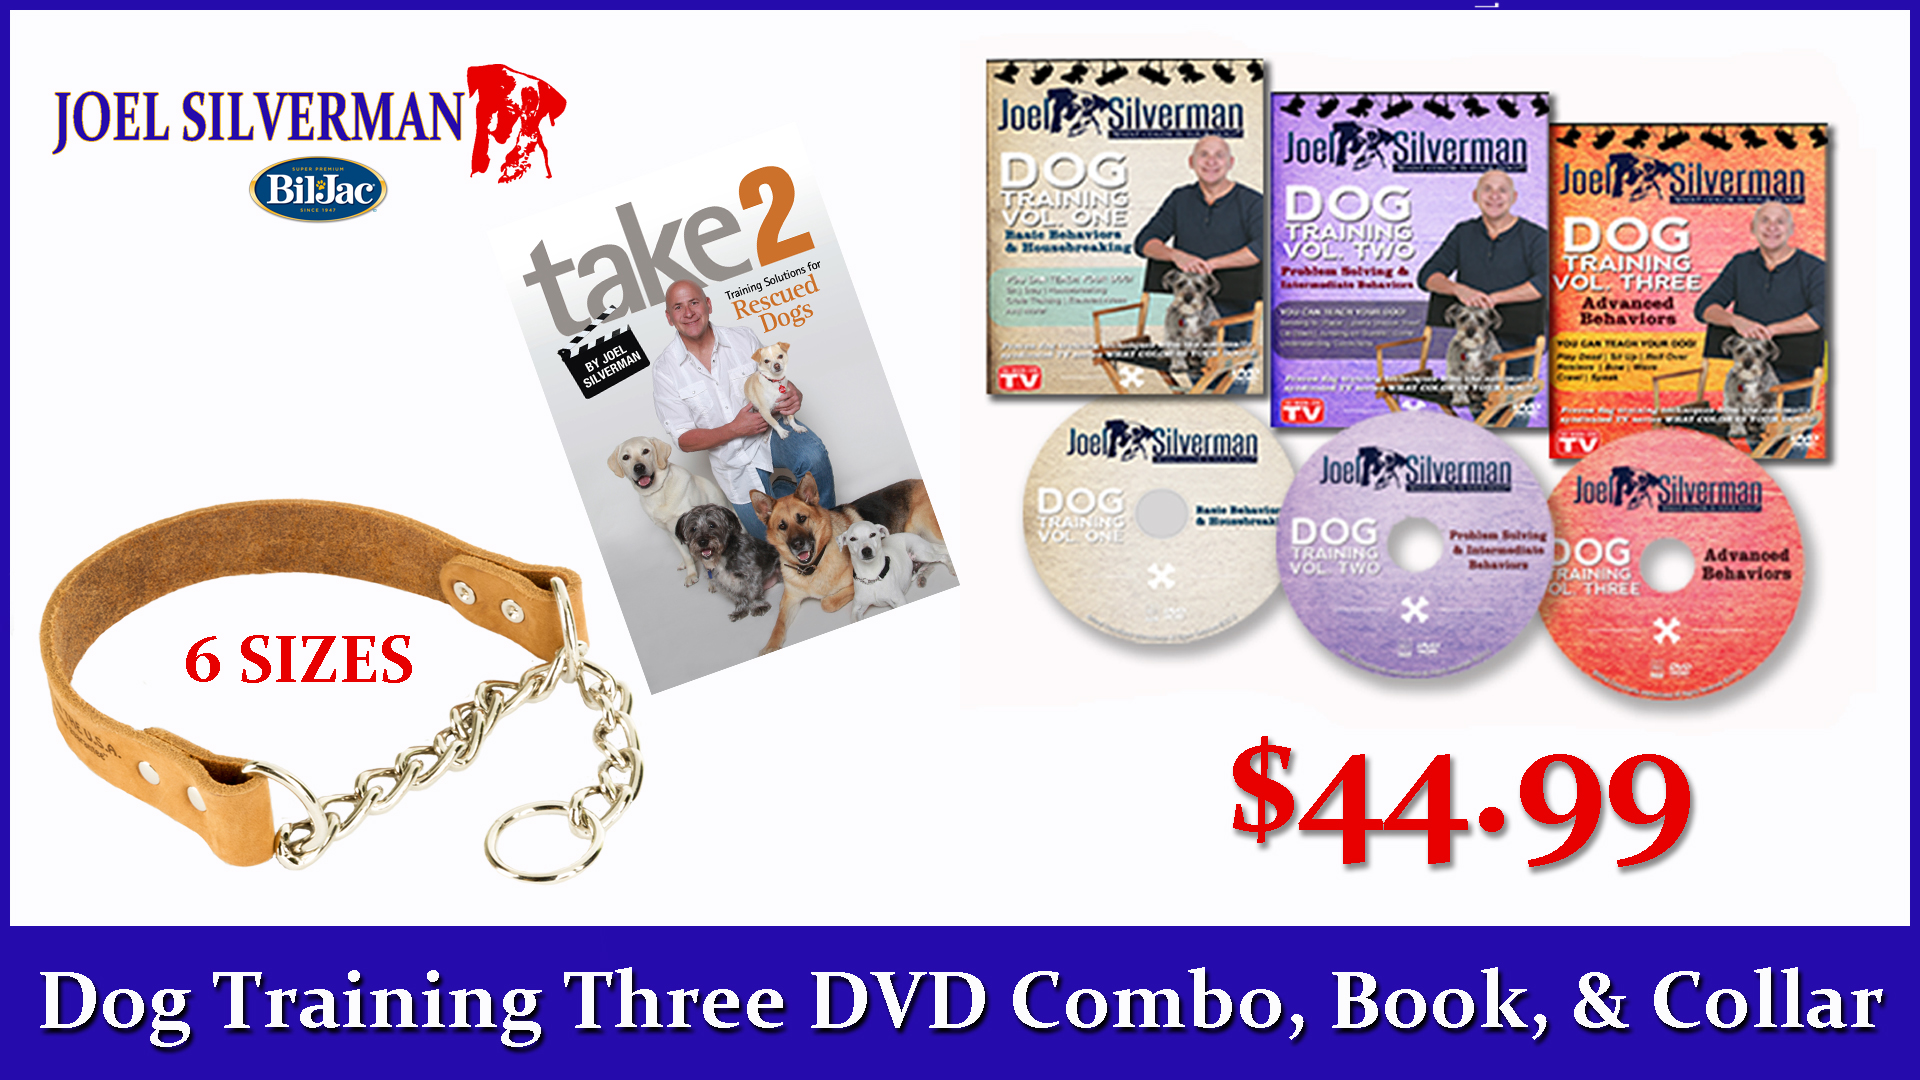 Joel Silverman's 3 DVD Set   Alternative Training Collar   Take 2, Training Solutions .. Book